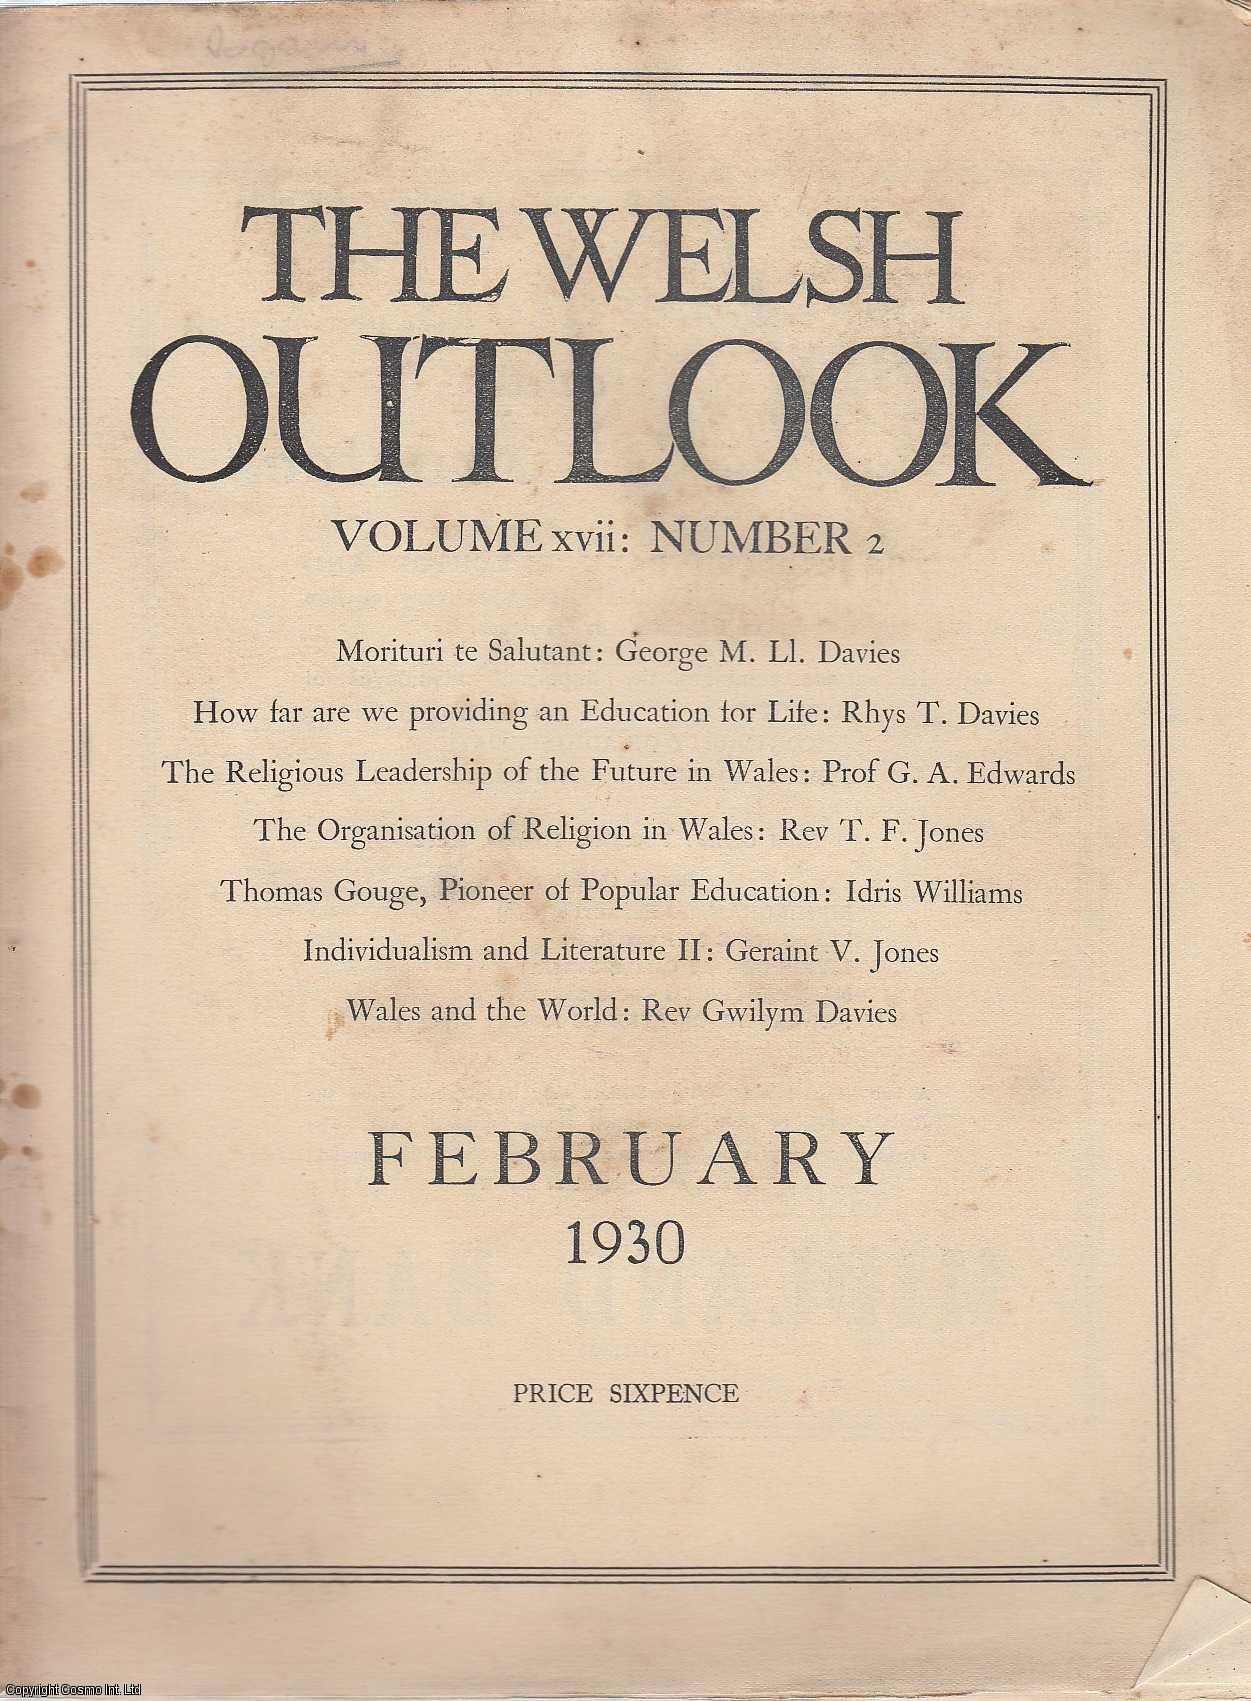 The Welsh Outlook. A Monthly Journal of National Social Progress. February, 1930. Contains; Morituri Te Salutant by George M. Ll. Davies; How far are we Providing an Education for Life by Rhys T. Davies; A Folk School for Wales by Frederic Evans; The Religious Leadership of The Future in Wales by Prof. G.A. Edwards; The Organisation of Religion in Wales by Rev. T.F. Jones; Thomas Gouge, Pioneer of Popular Education by Idris Williams; Individualism and Literature by Geraint V. Jones; The Welsh League of Nations Union; Wales and The World by Rev. Gwilym Davies., Thomas Jones (Editor)